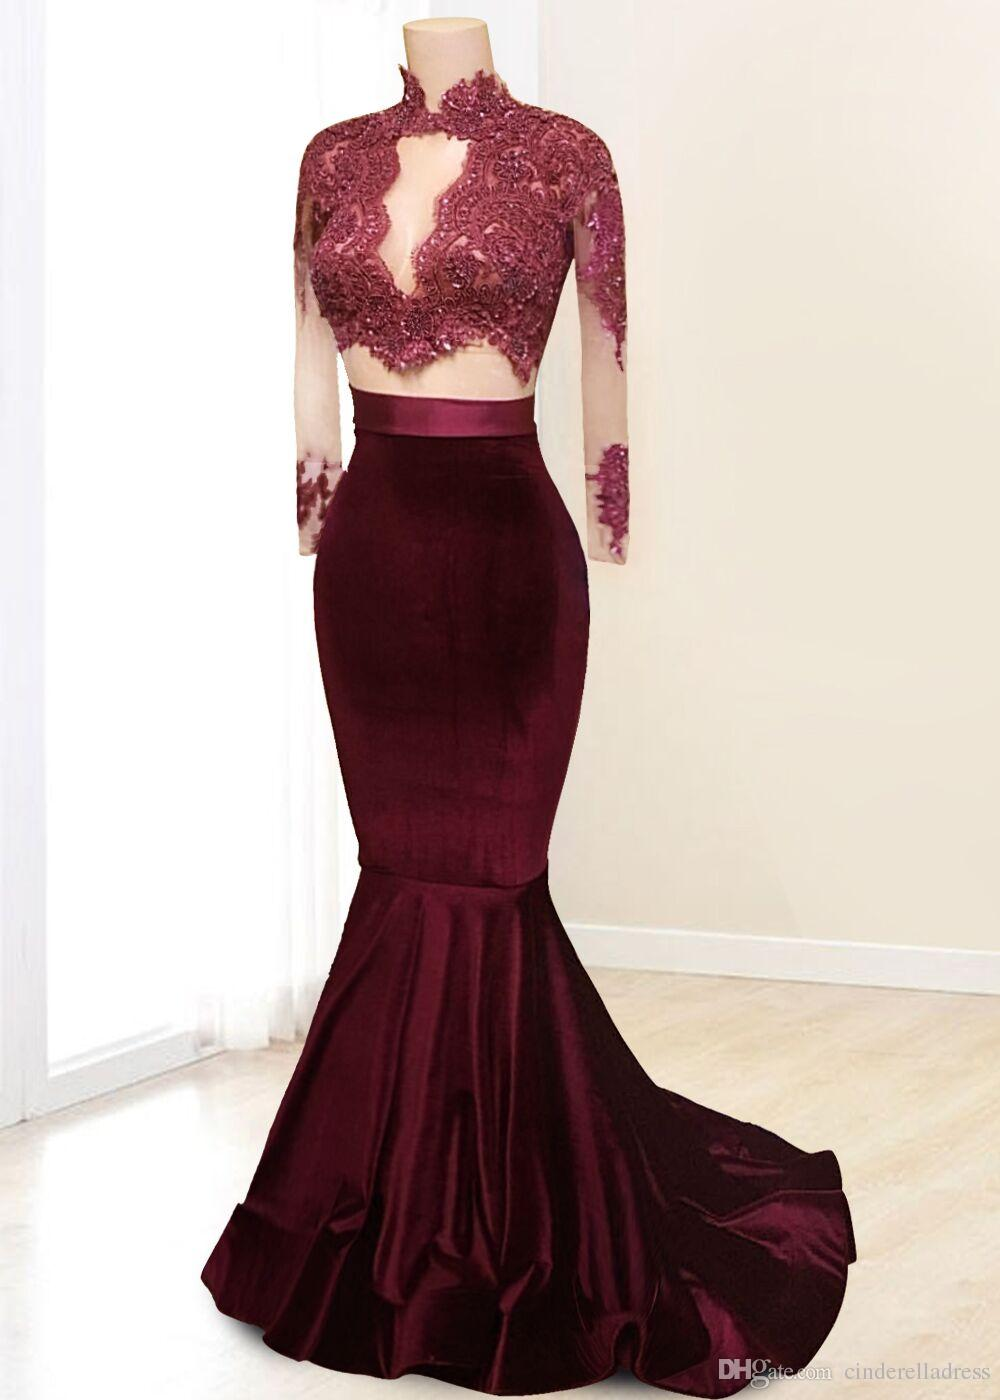 Lace mermaid dress with sleeves